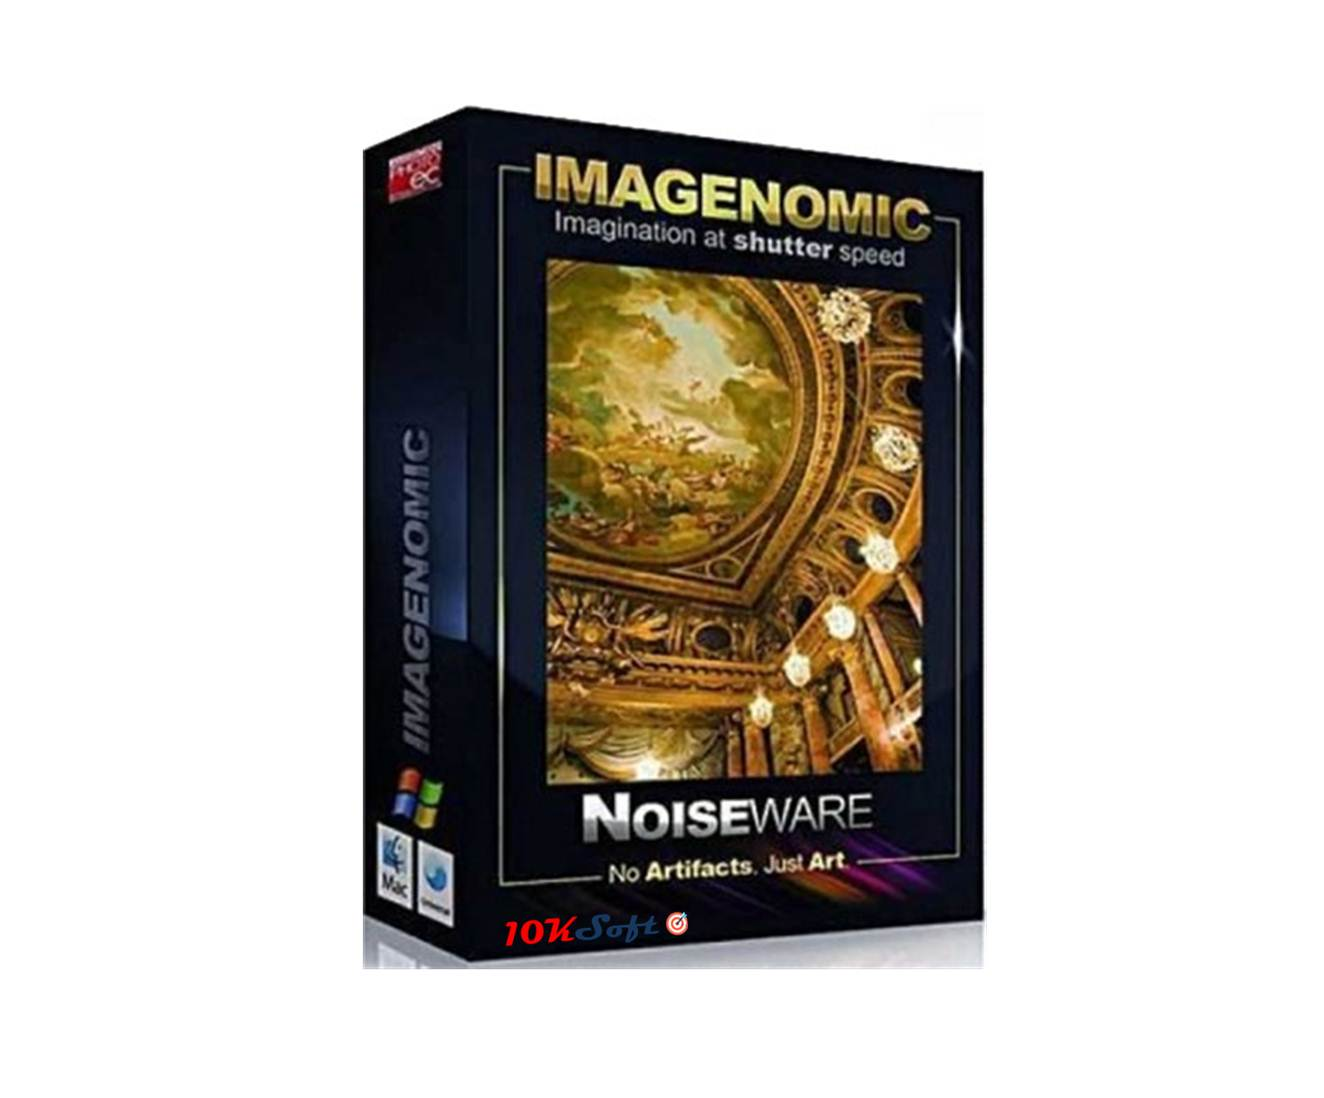 Free Download Imagenomic Noiseware 5 Filter For Photoshop